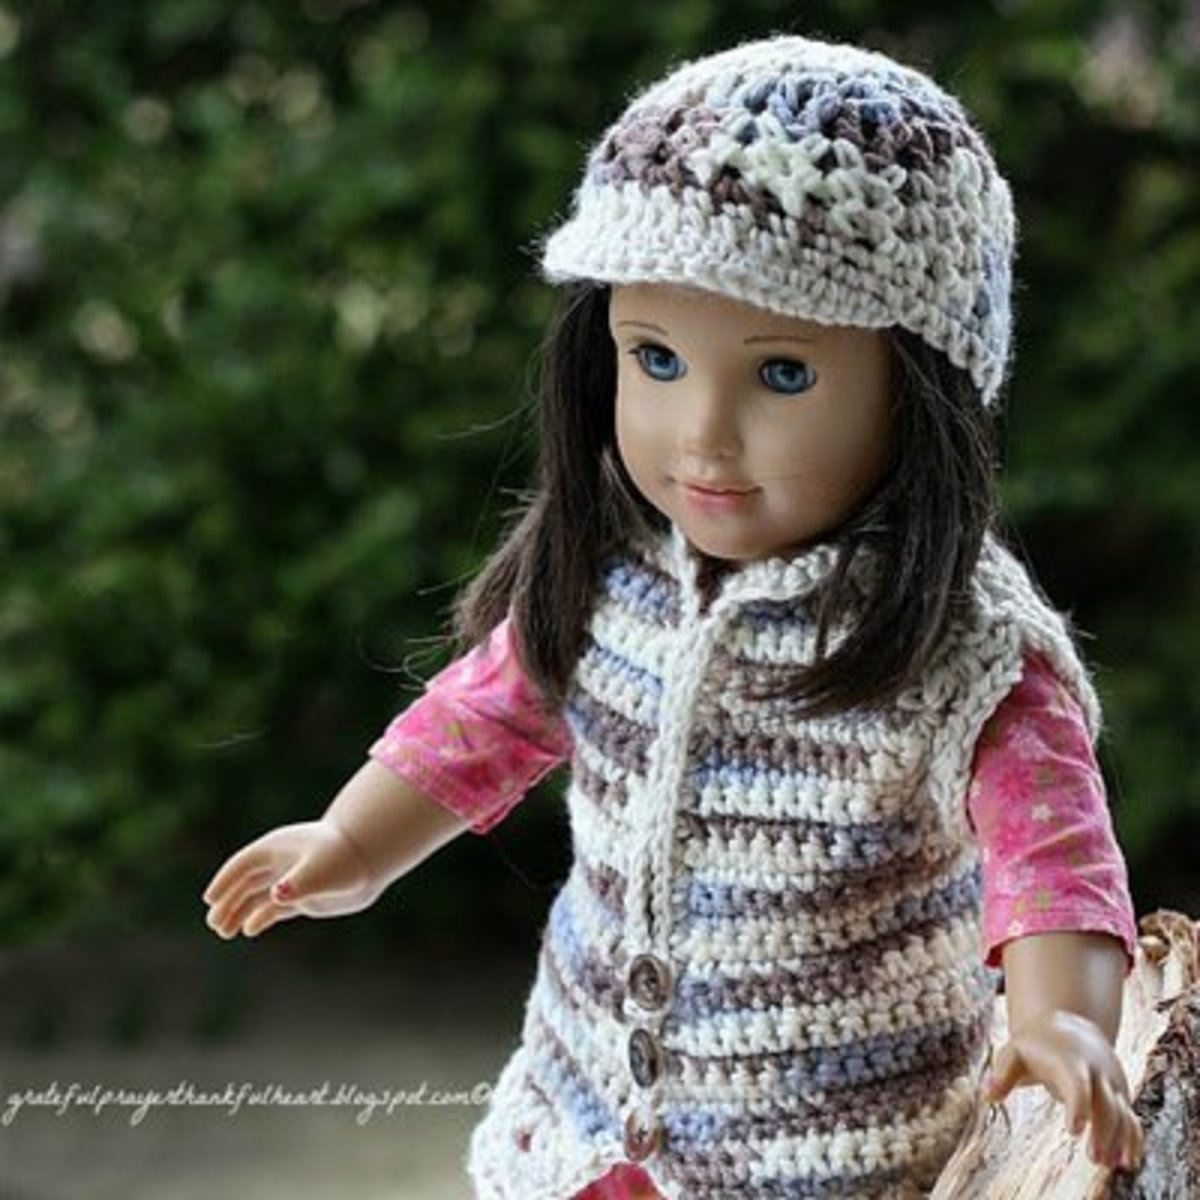 Crocheted sweater and cap